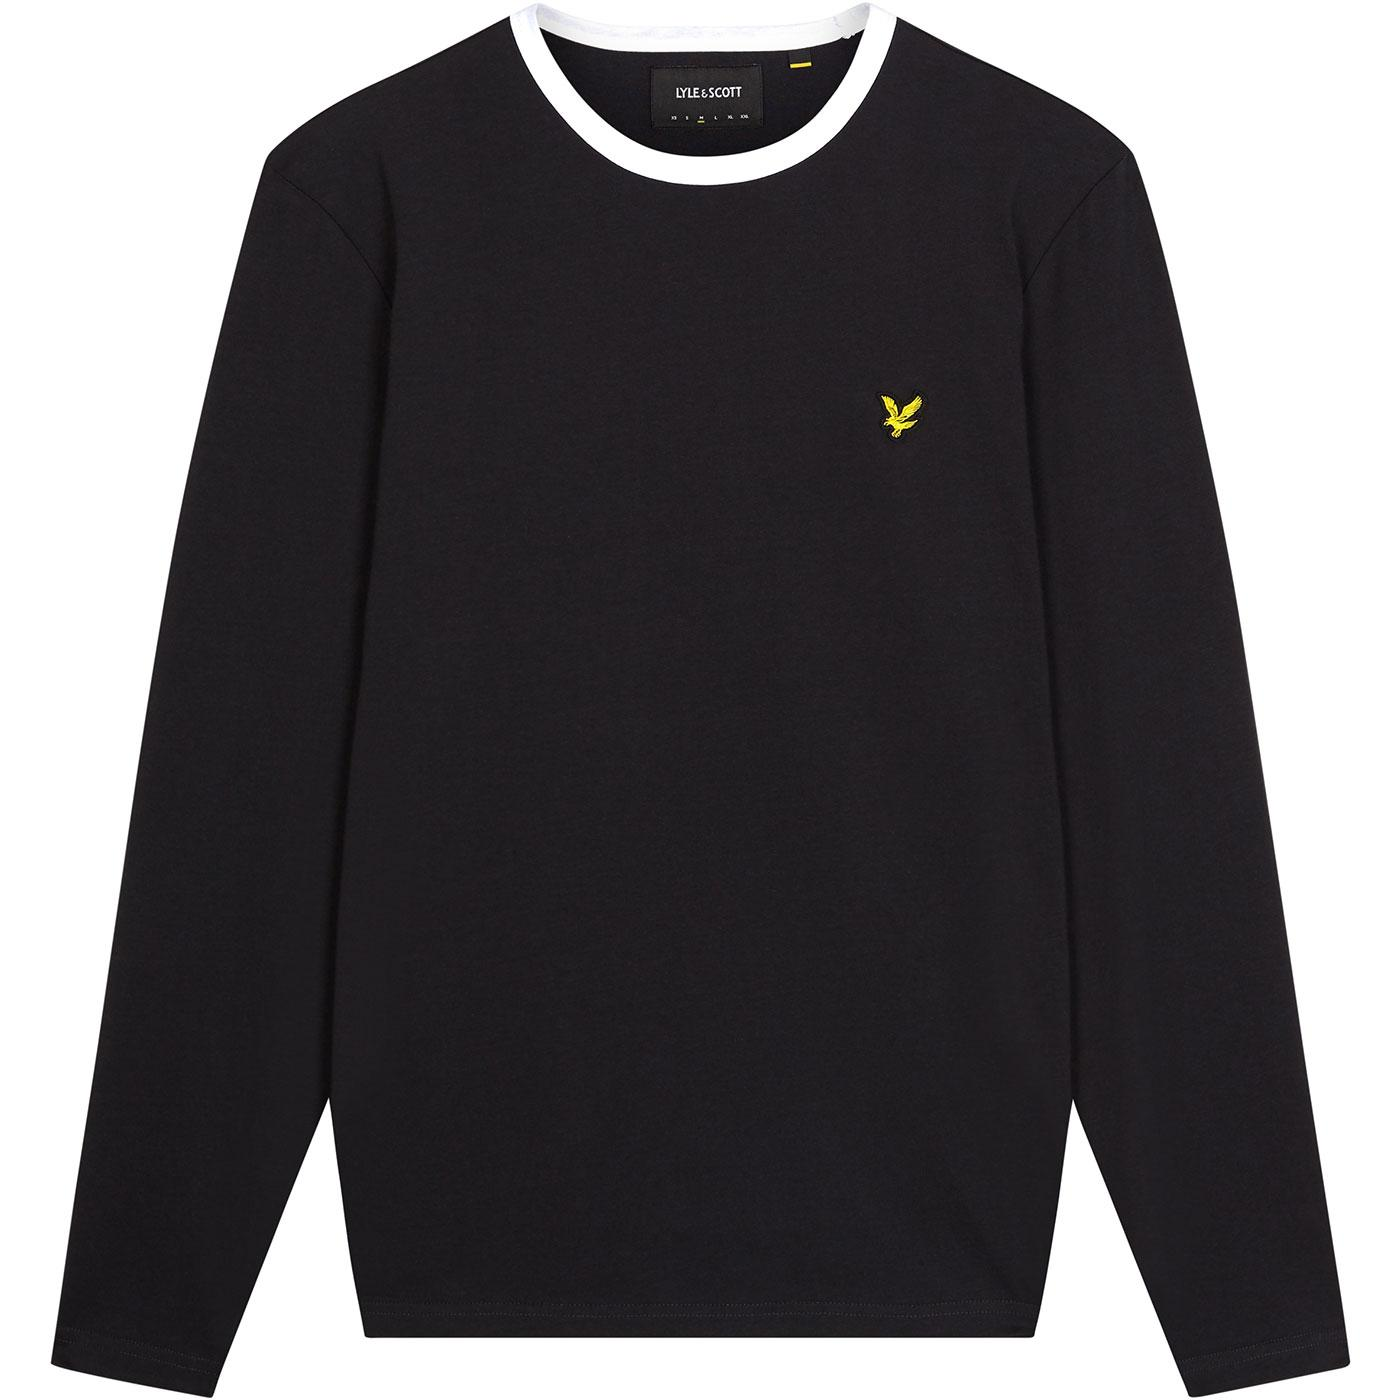 LYLE & SCOTT Retro Long Sleeve Ringer Tee - Black